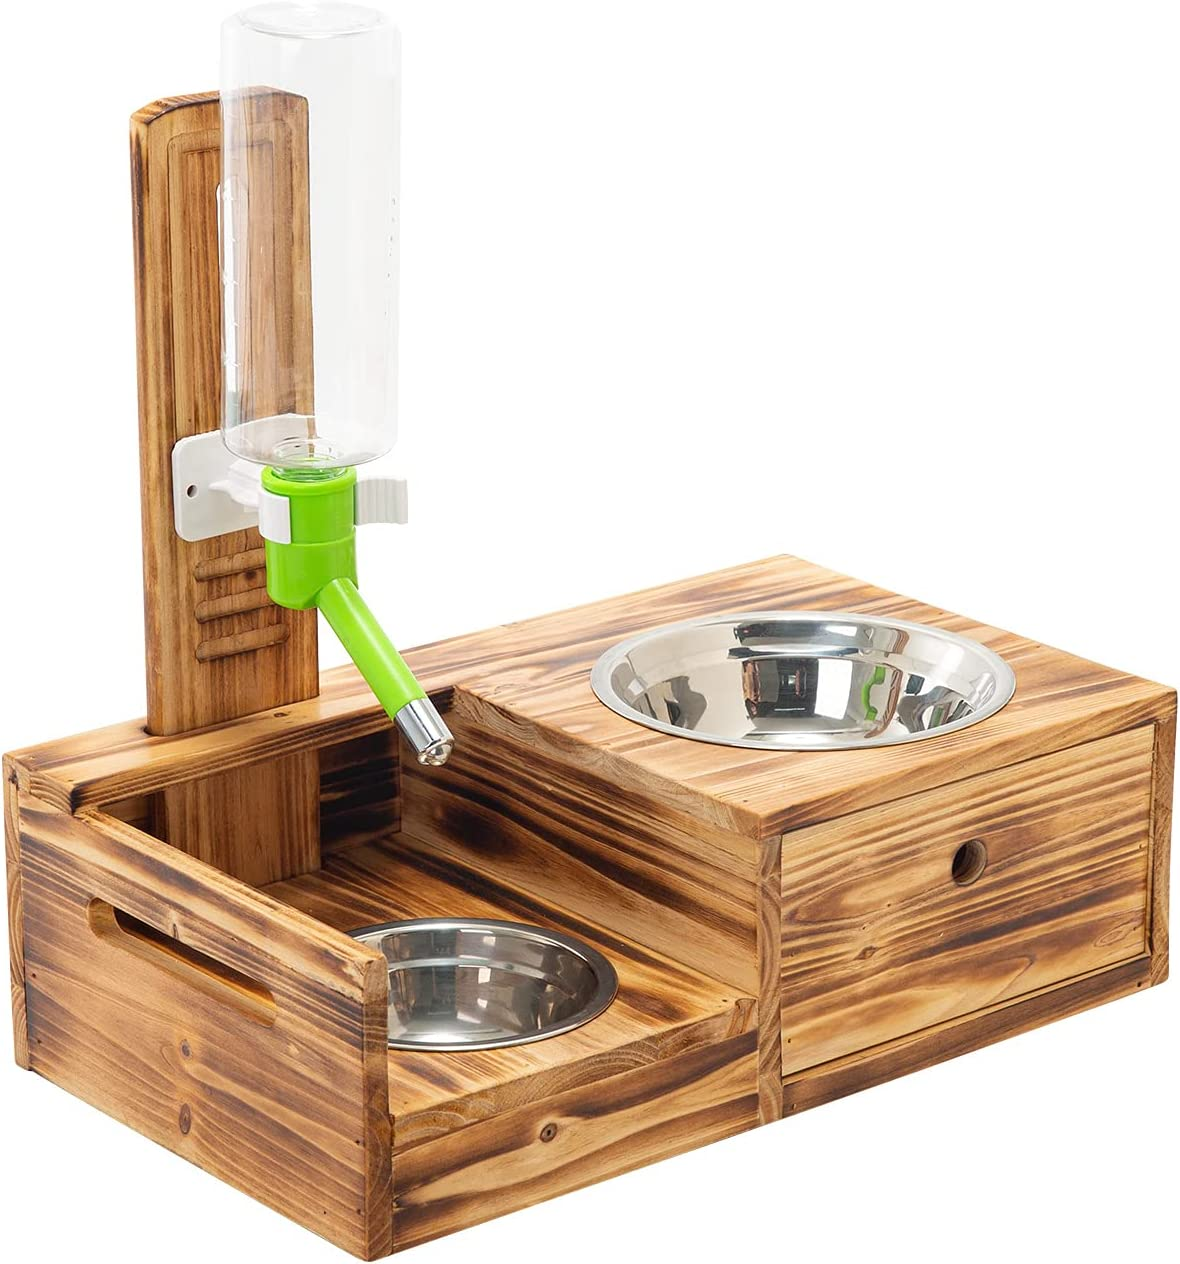 RLRICH Raised Pet Bowls for Cats and Dogs,Wood Elevated Dog Cat Food and Water Bowls Stand Feeder with 2 Stainless Steel Bowls and Water Bottle,Pet Feeder with Storage Drawer